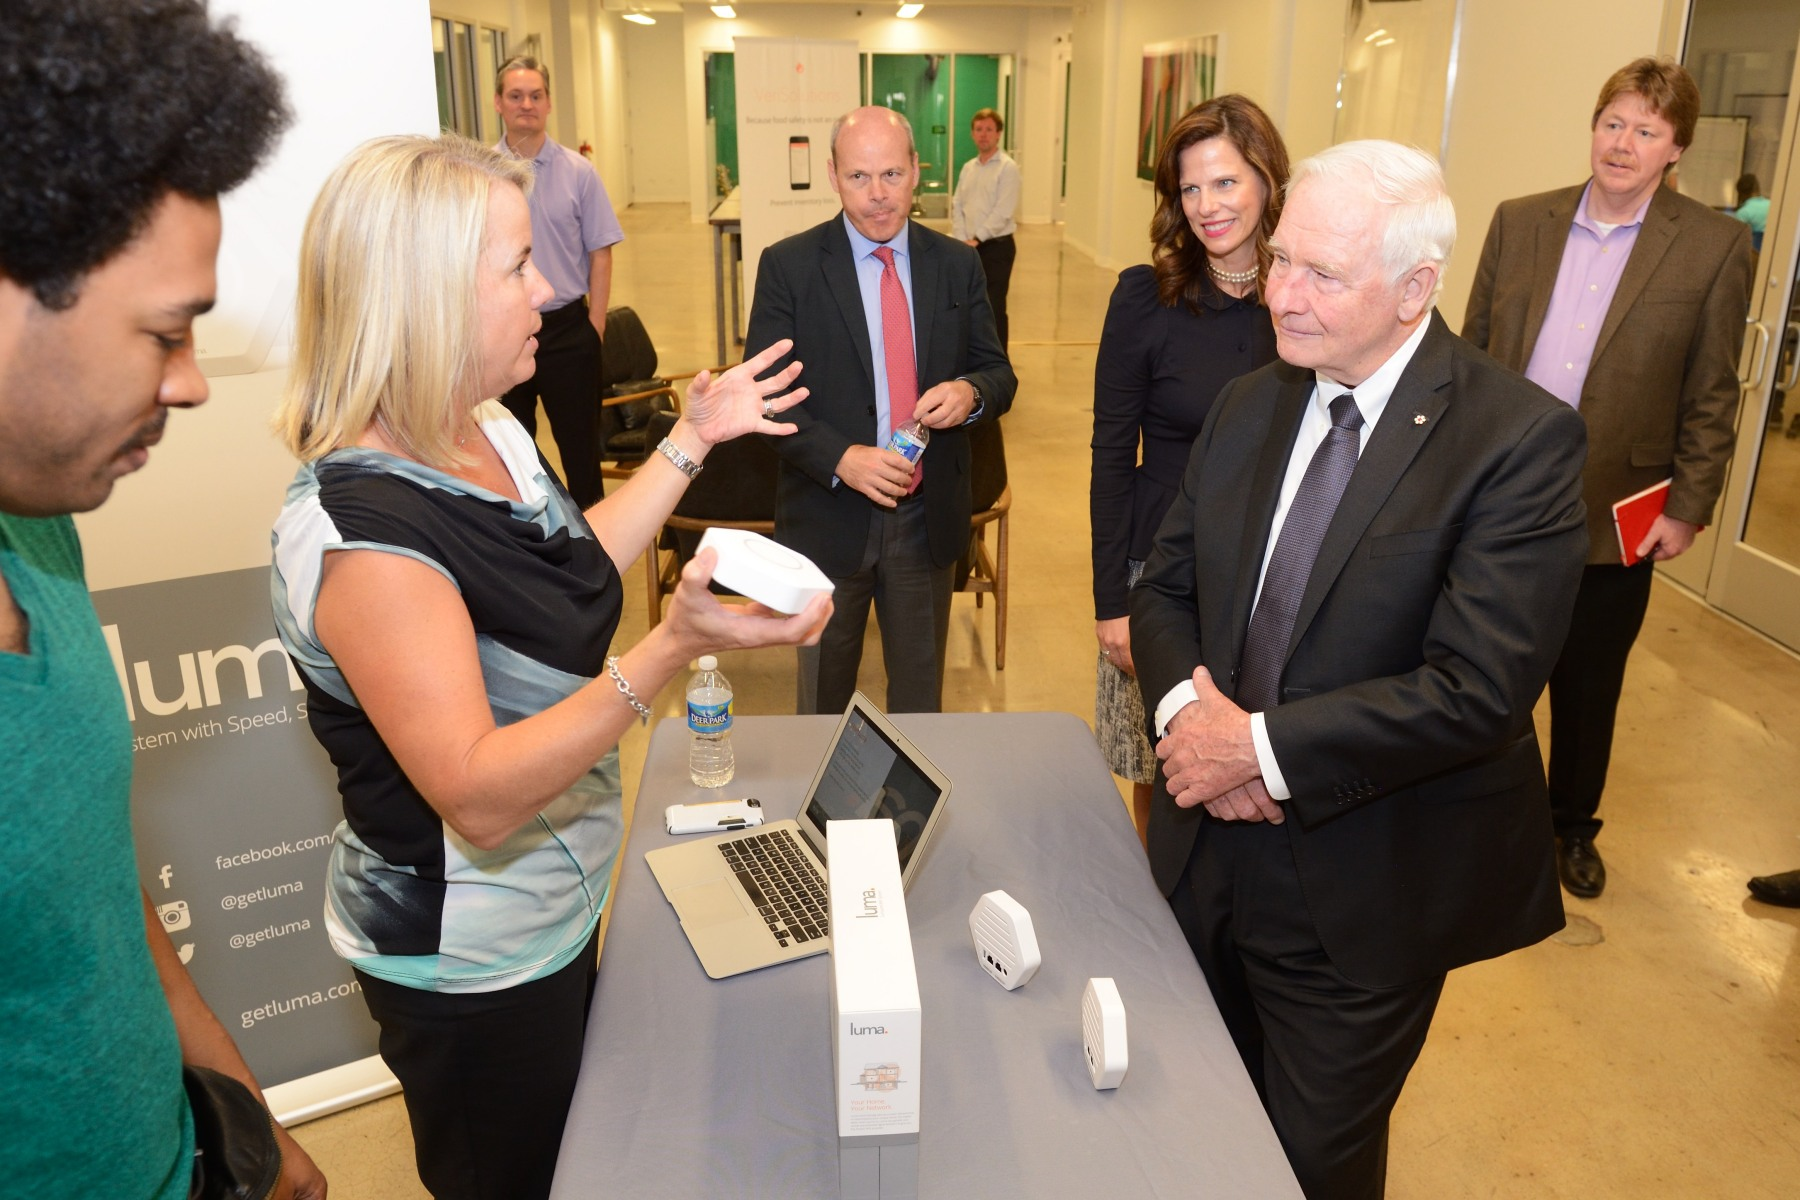 His Excellency toured the site and had the opportunity to learn about three successful start-ups: Luma, Stackfolio and Vericlean, each of which presented him with a 90-second pitch on their technology and success.